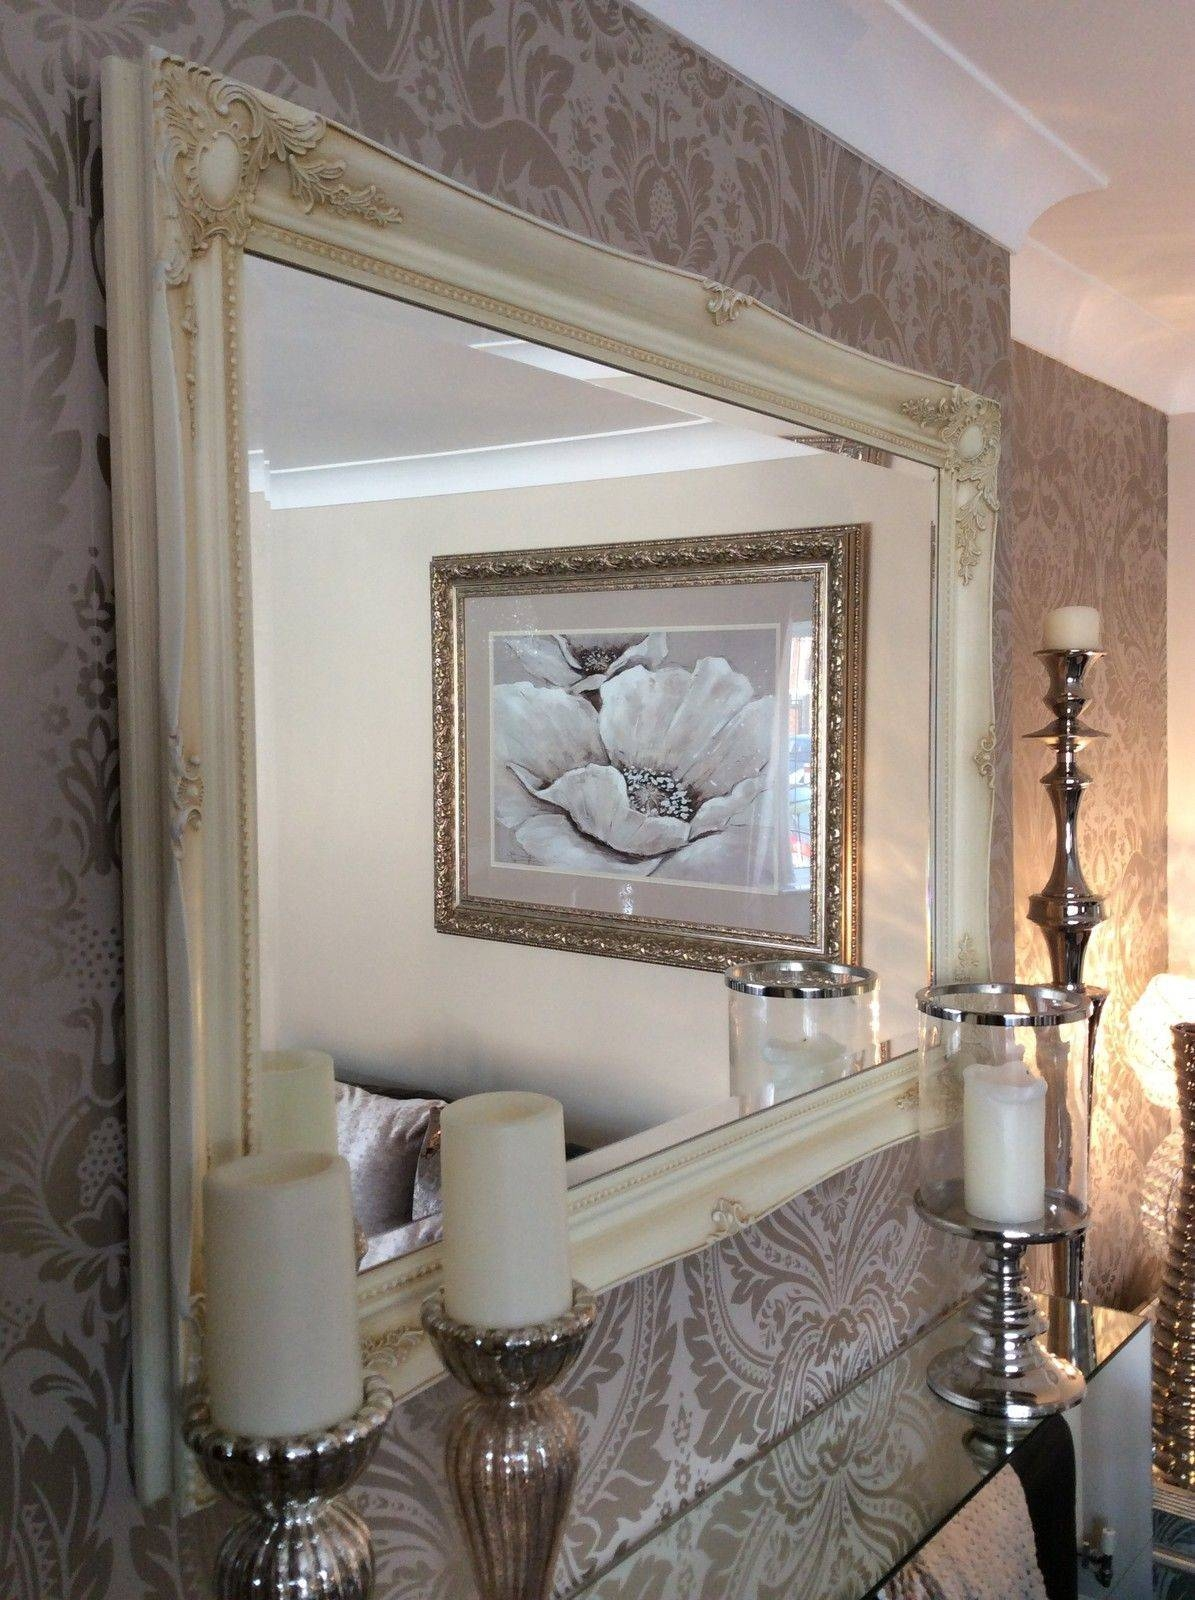 Living Room: Large Decorative Wall Mirrorsdecoration Ideas With Regard To Large Ornate Wall Mirrors (View 12 of 15)